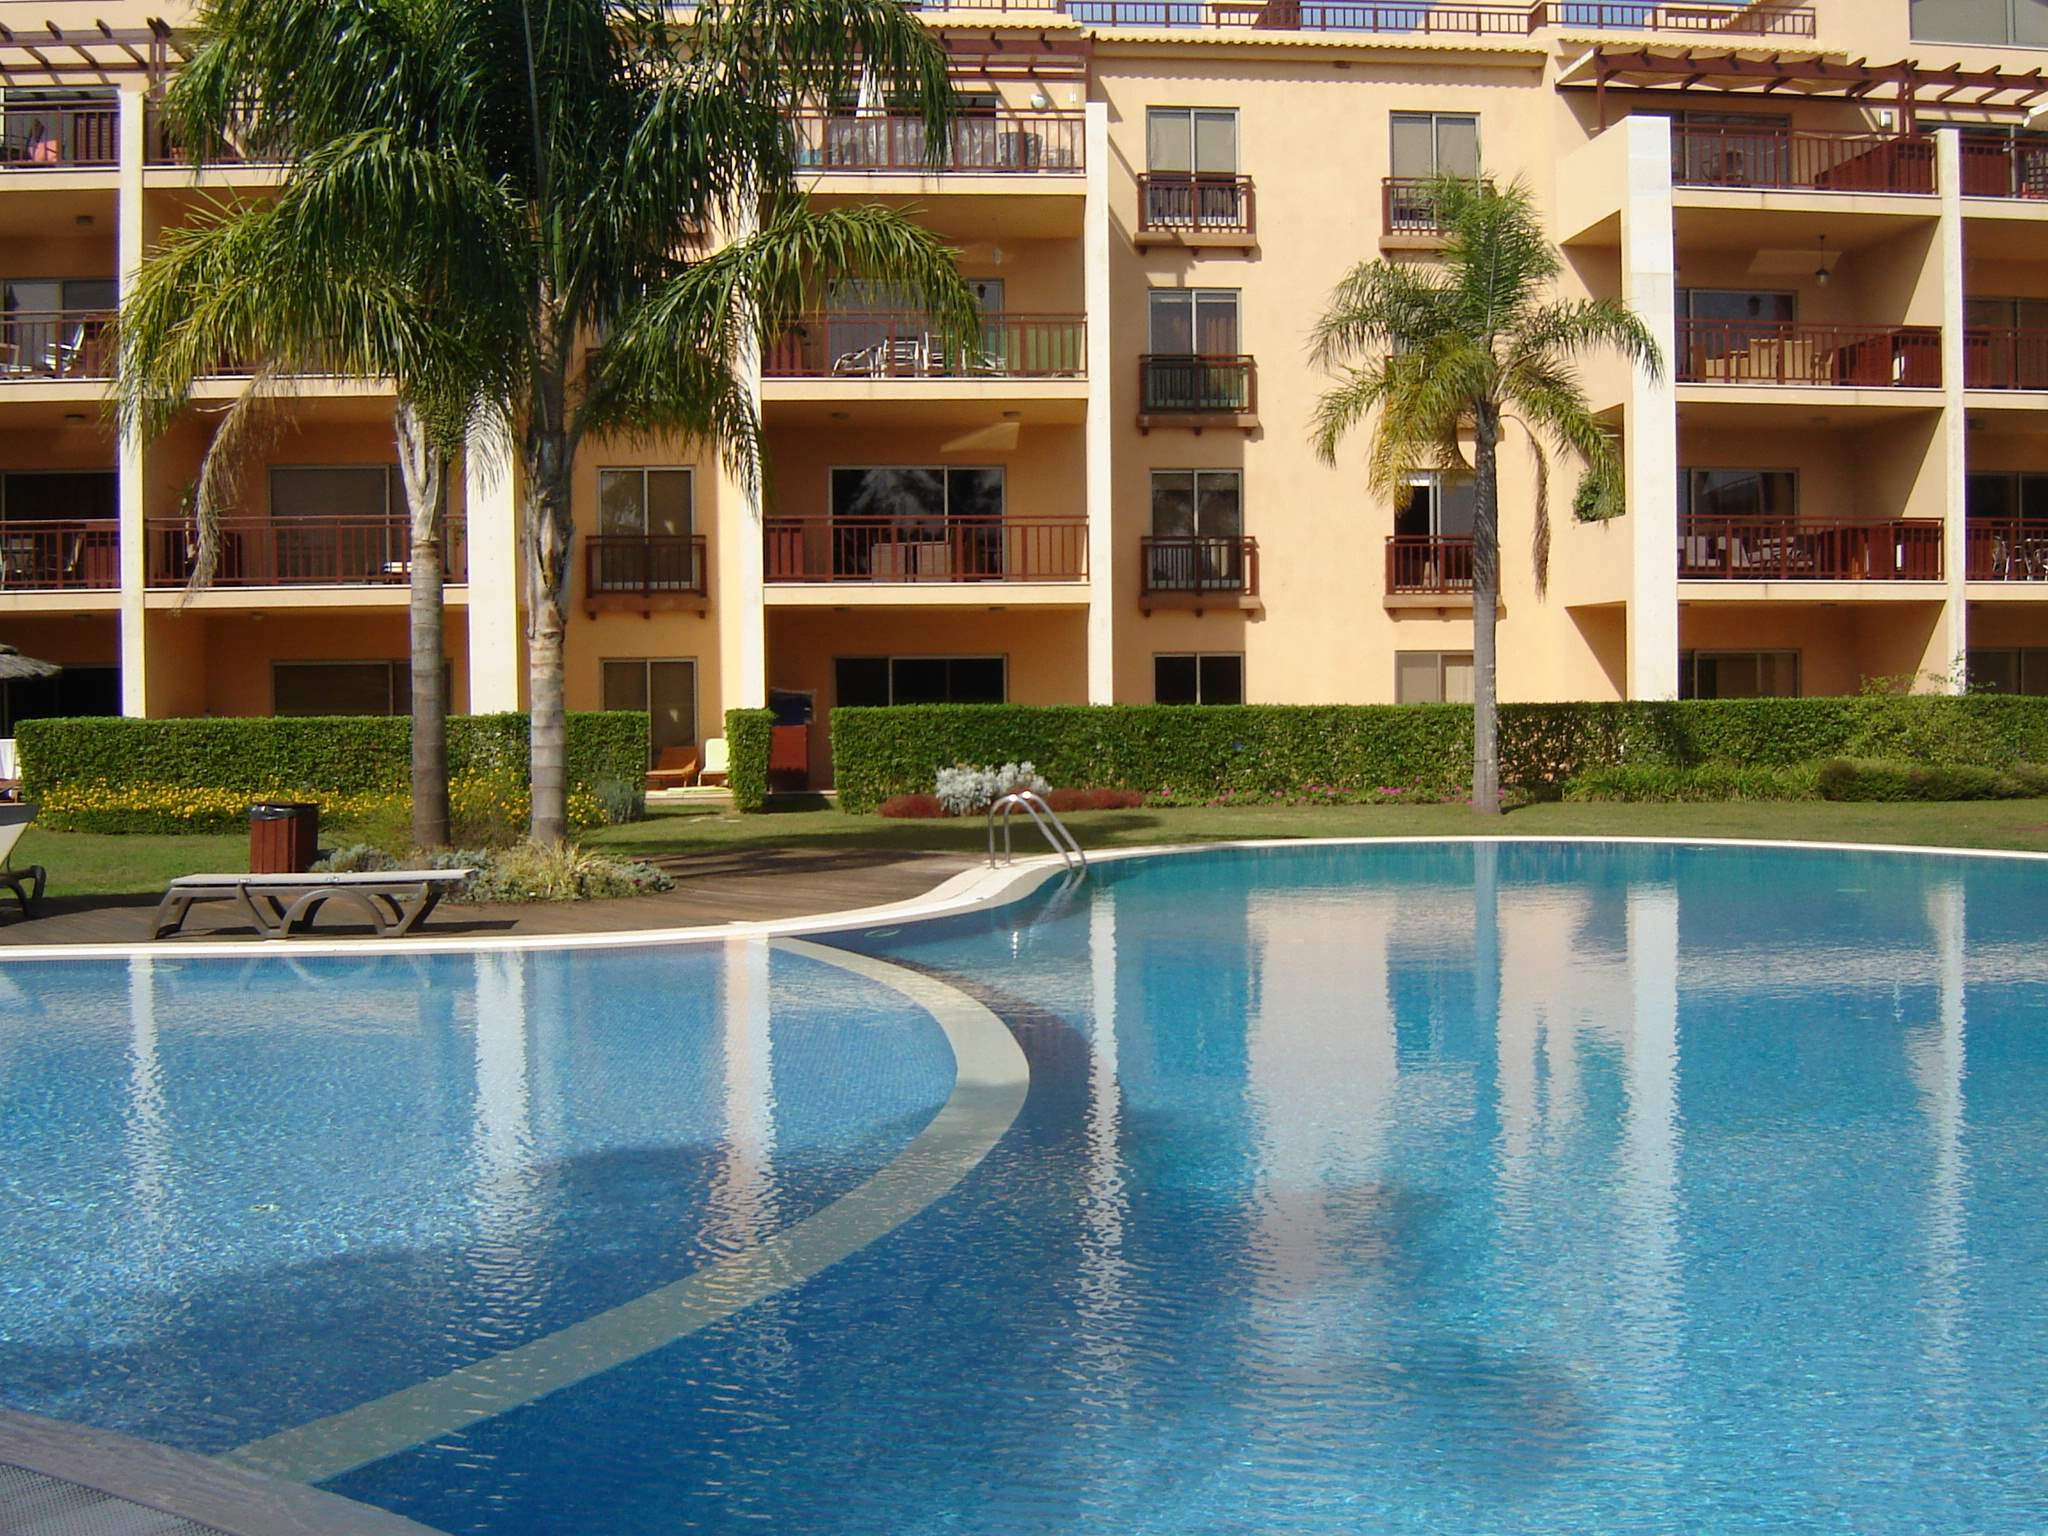 Apartment Majoka, 2 bedroom apartment in Vilamoura Area, Algarve Photo #13